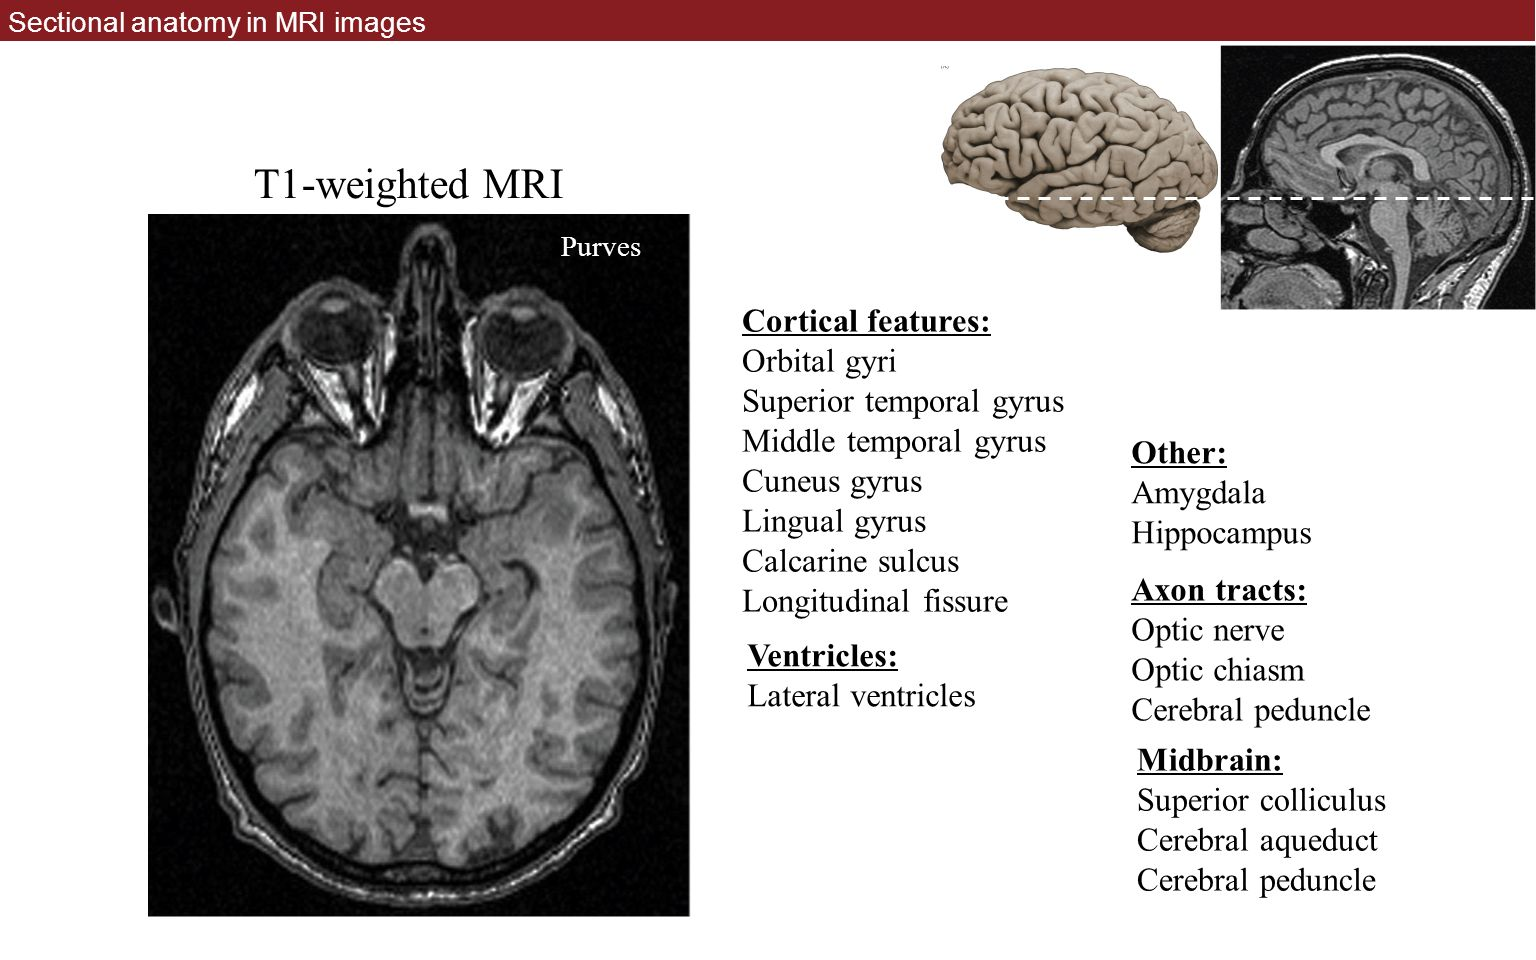 Neuroradiology And Sectional Anatomy Ppt Download